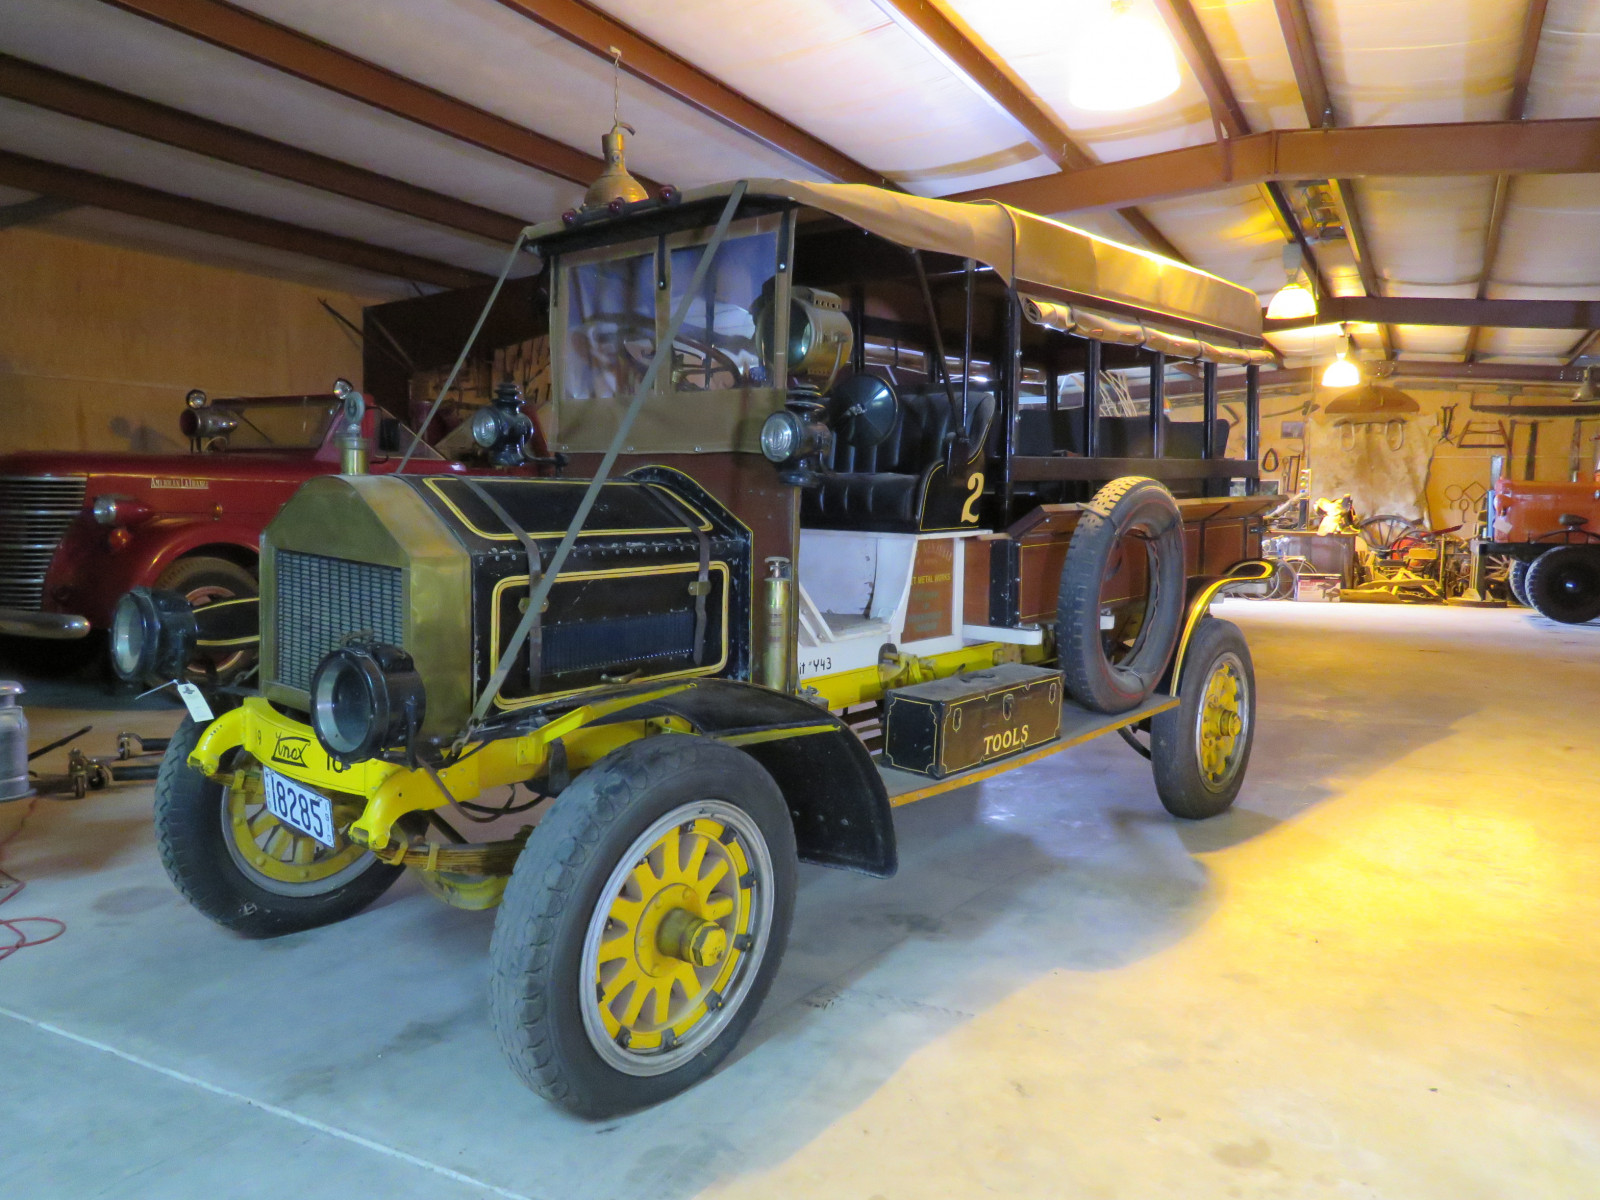 RARE 1910 Knox Open Cab Stakebed Truck - Image 1